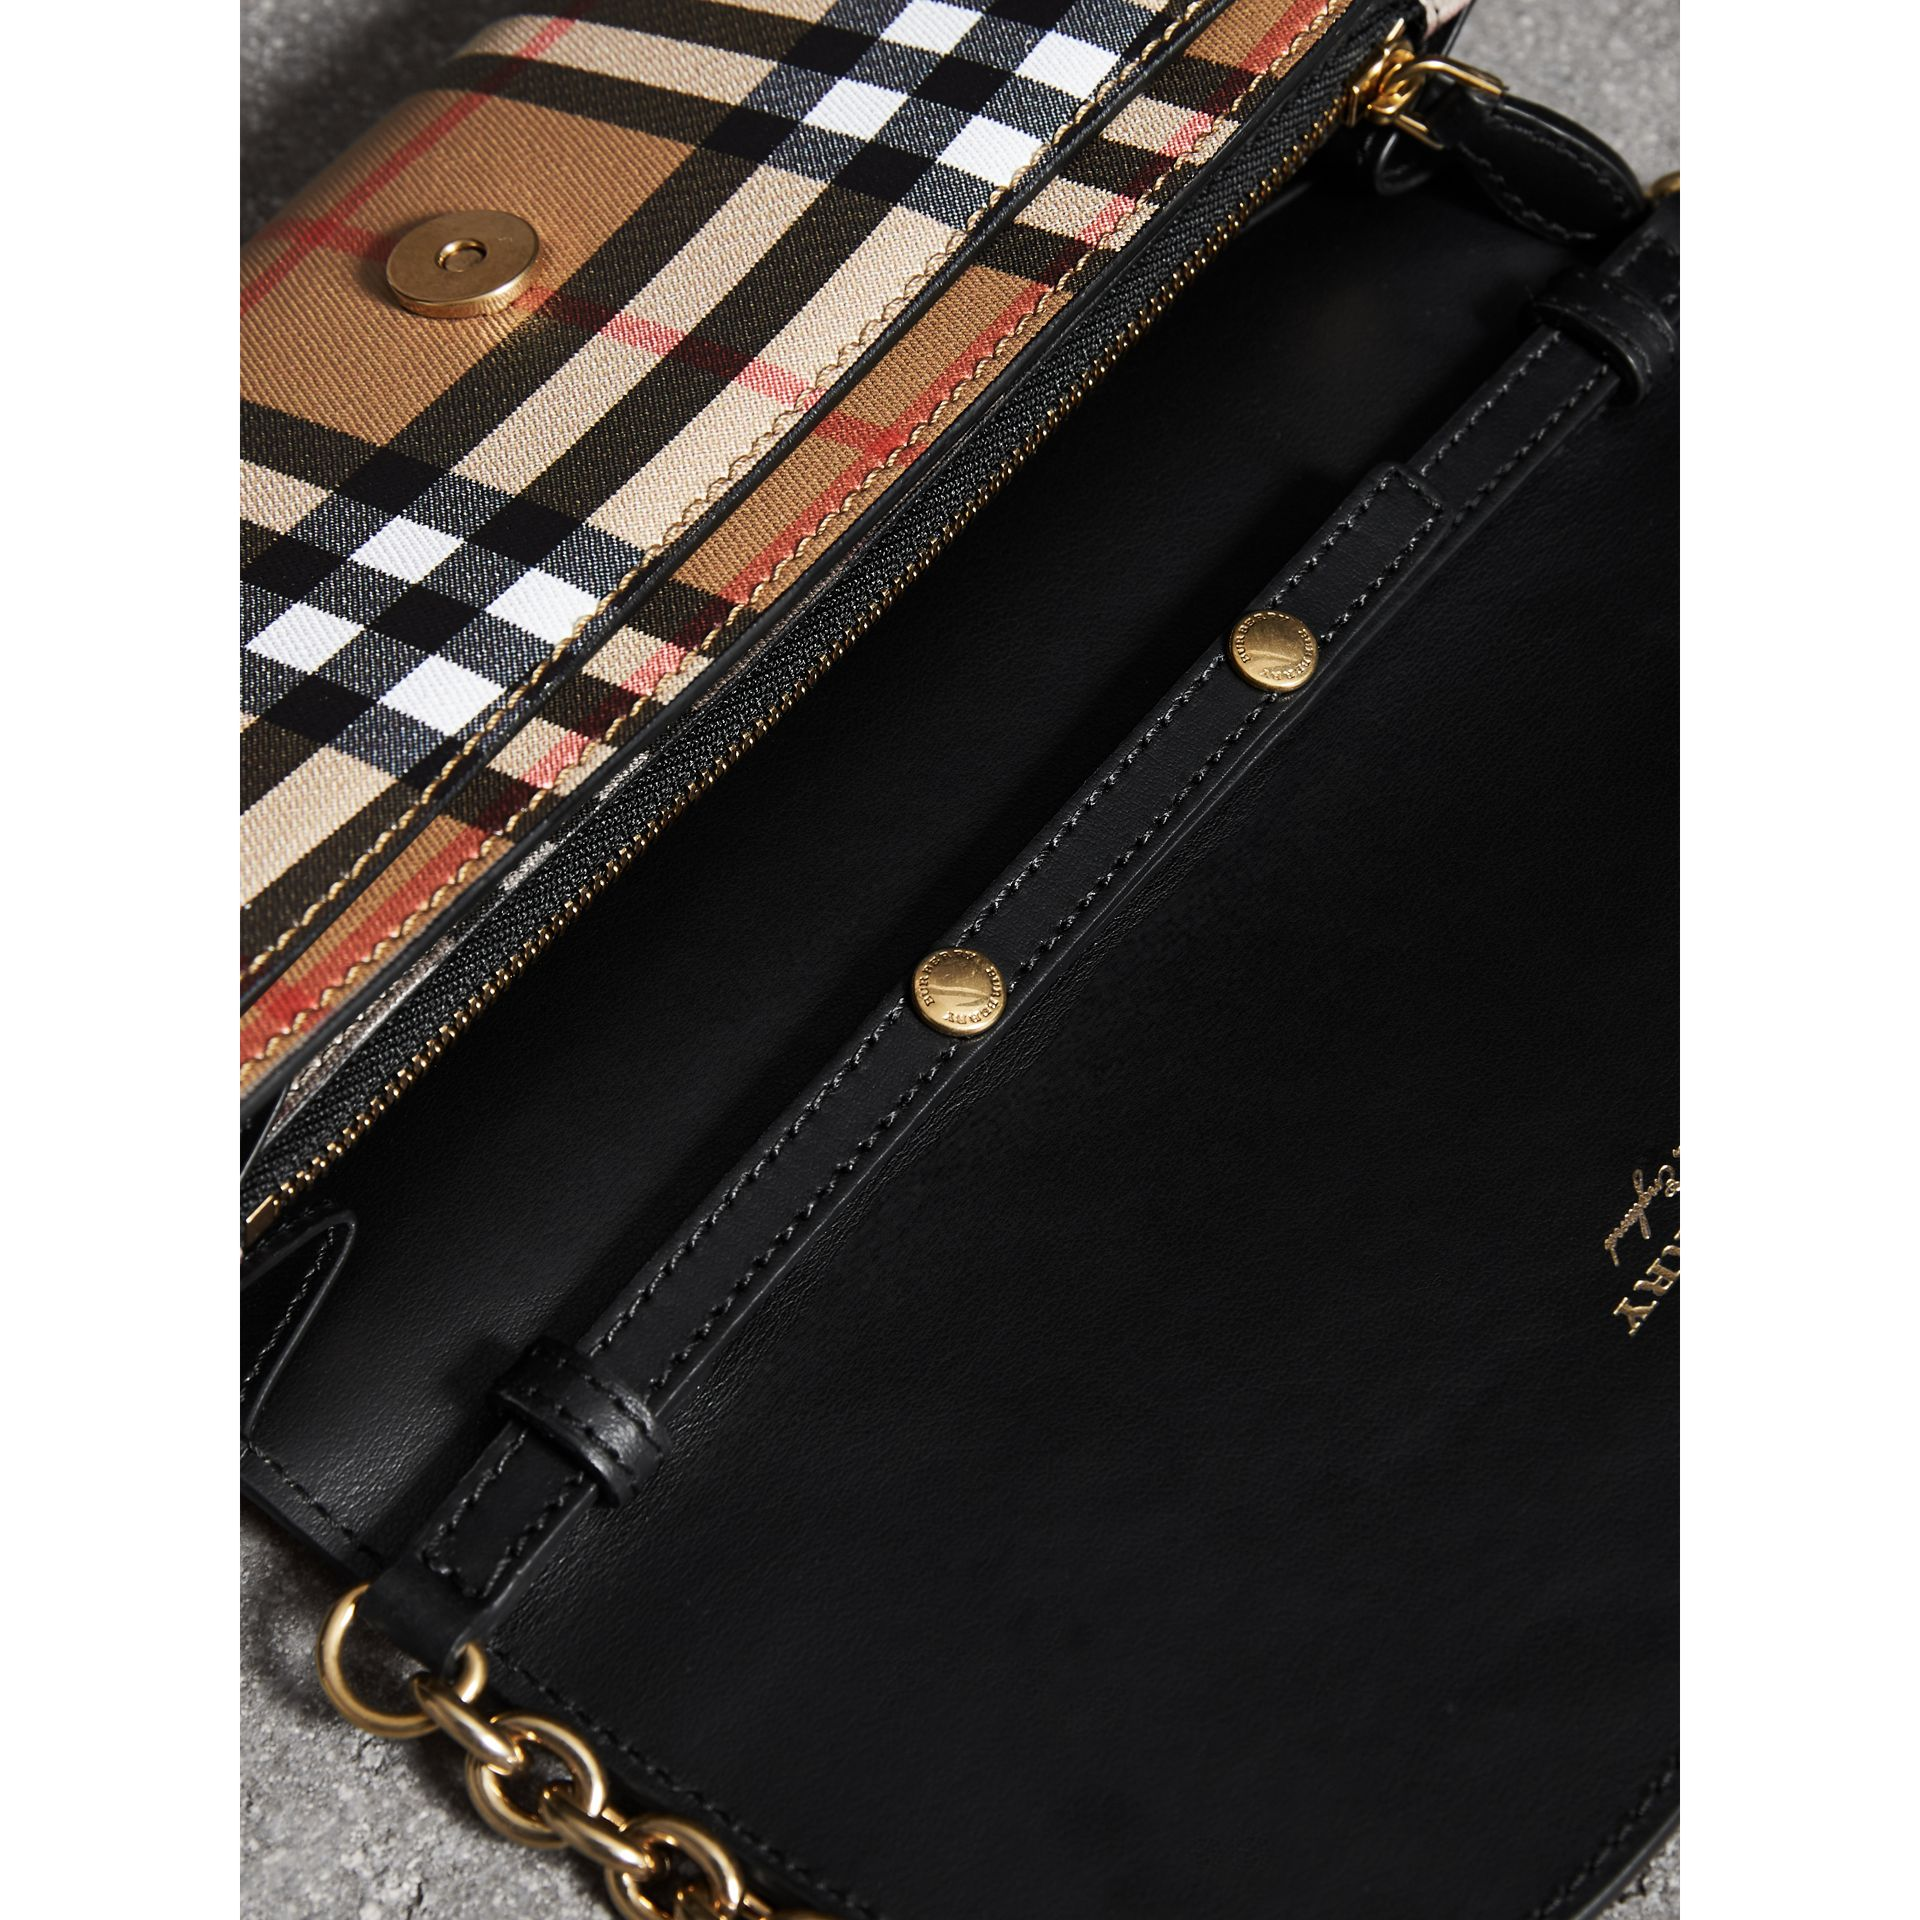 Vintage Check and Leather Wallet with Chain in Black - Women | Burberry Australia - gallery image 5